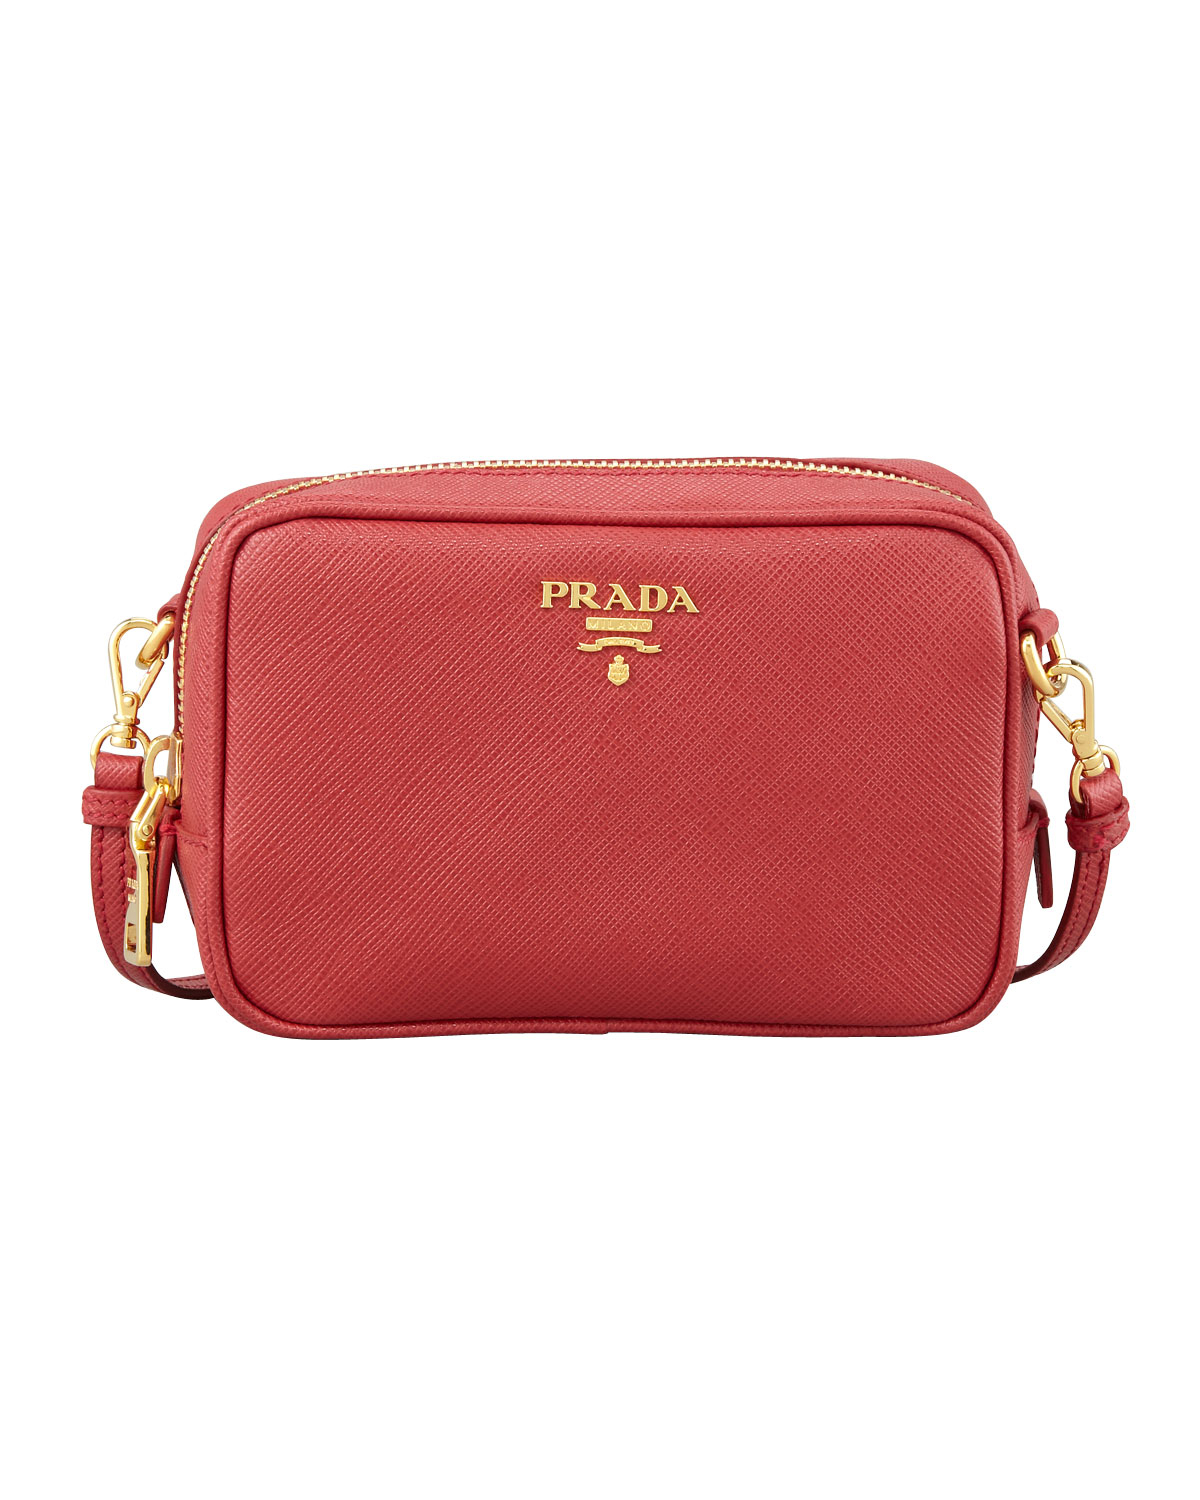 prada saffiano colorblock crossbody bag, prada clutch black